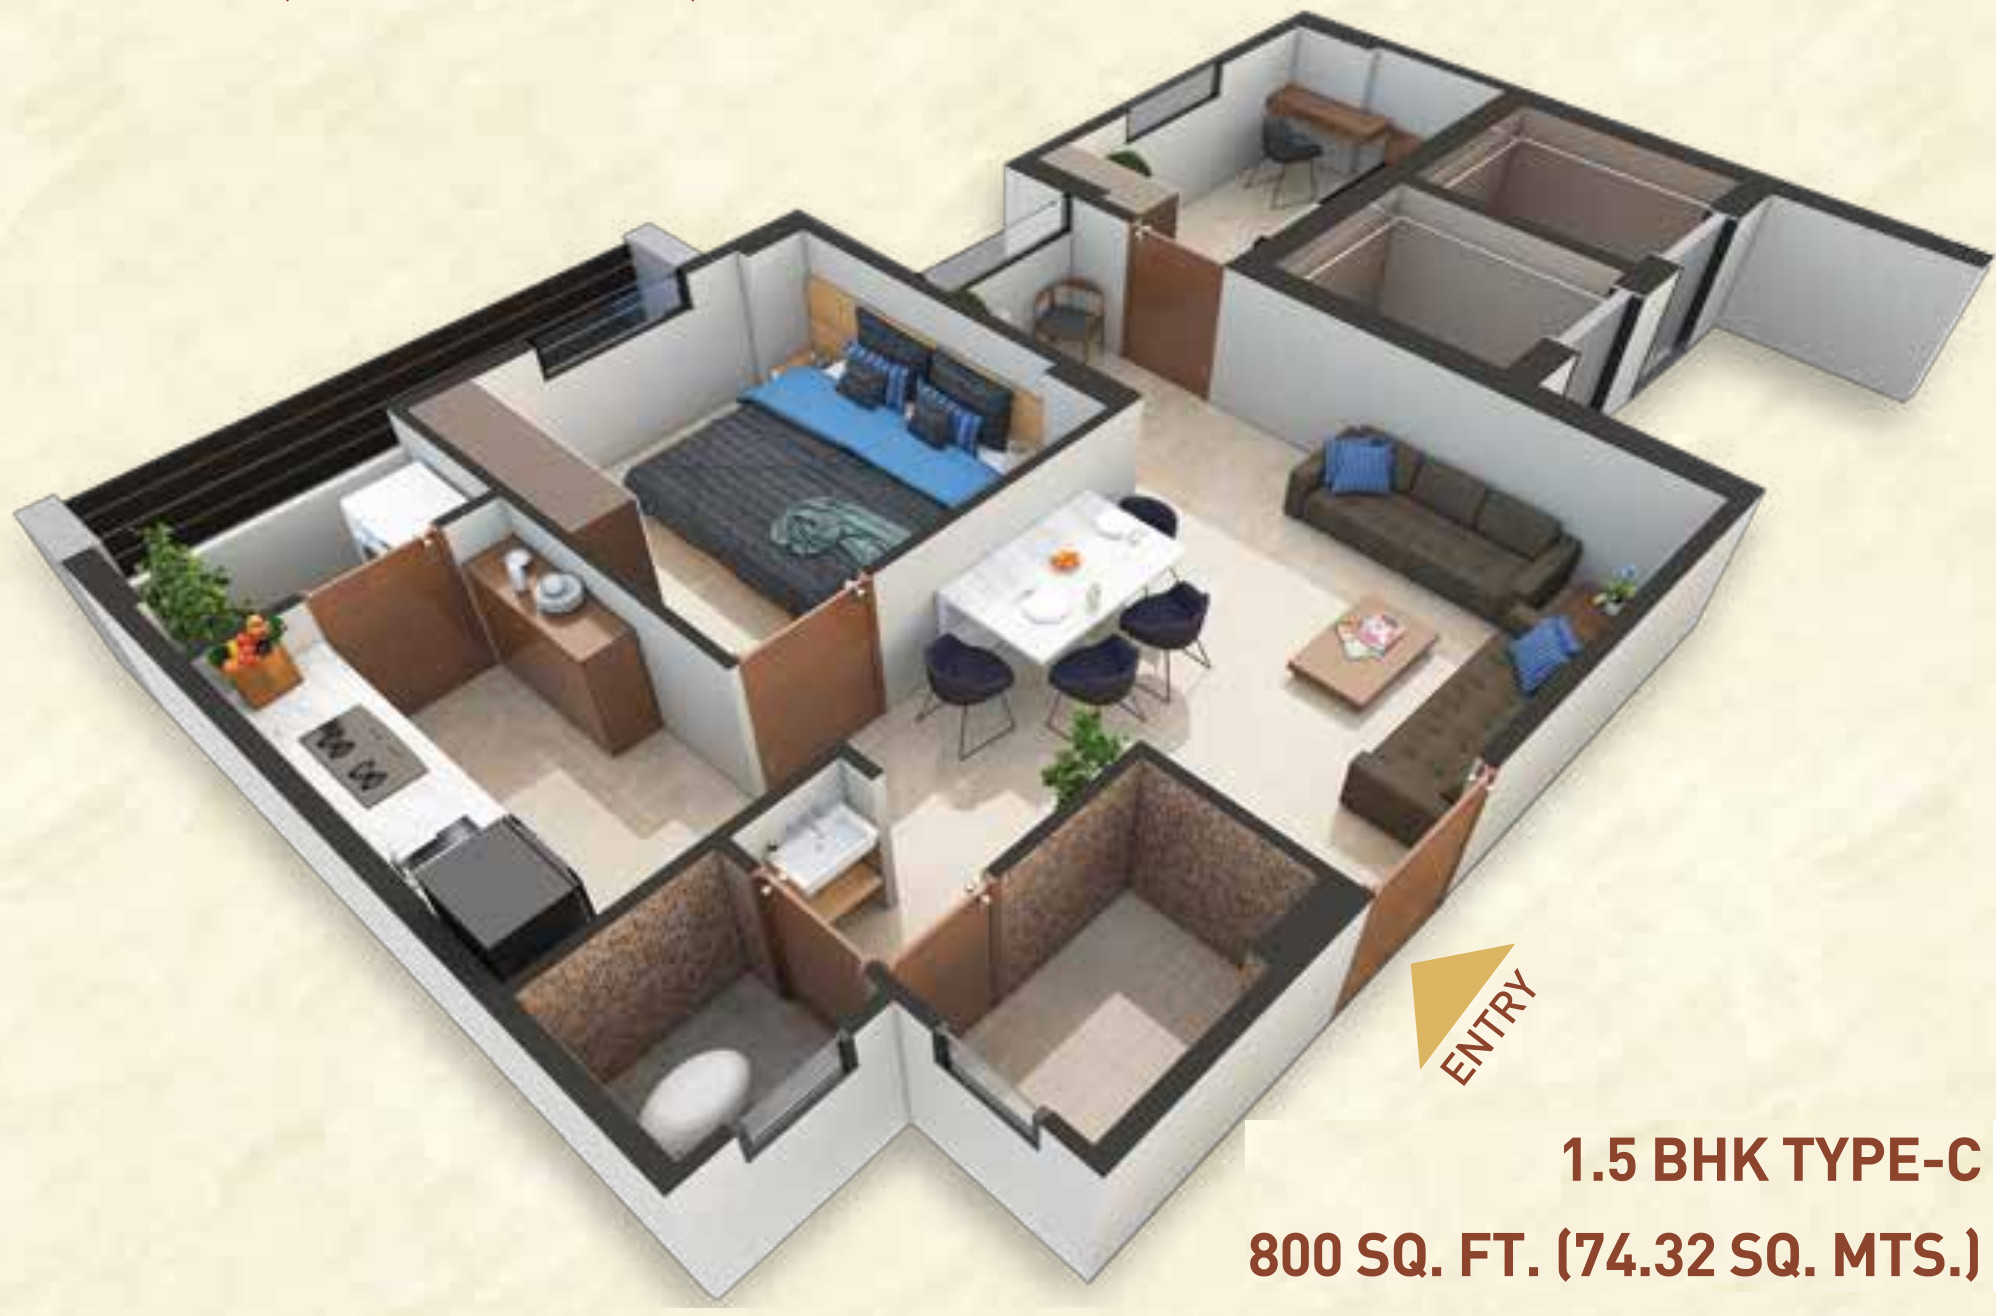 Awesome 800 Sq Ft Apartment Images - Interior Design Ideas ...